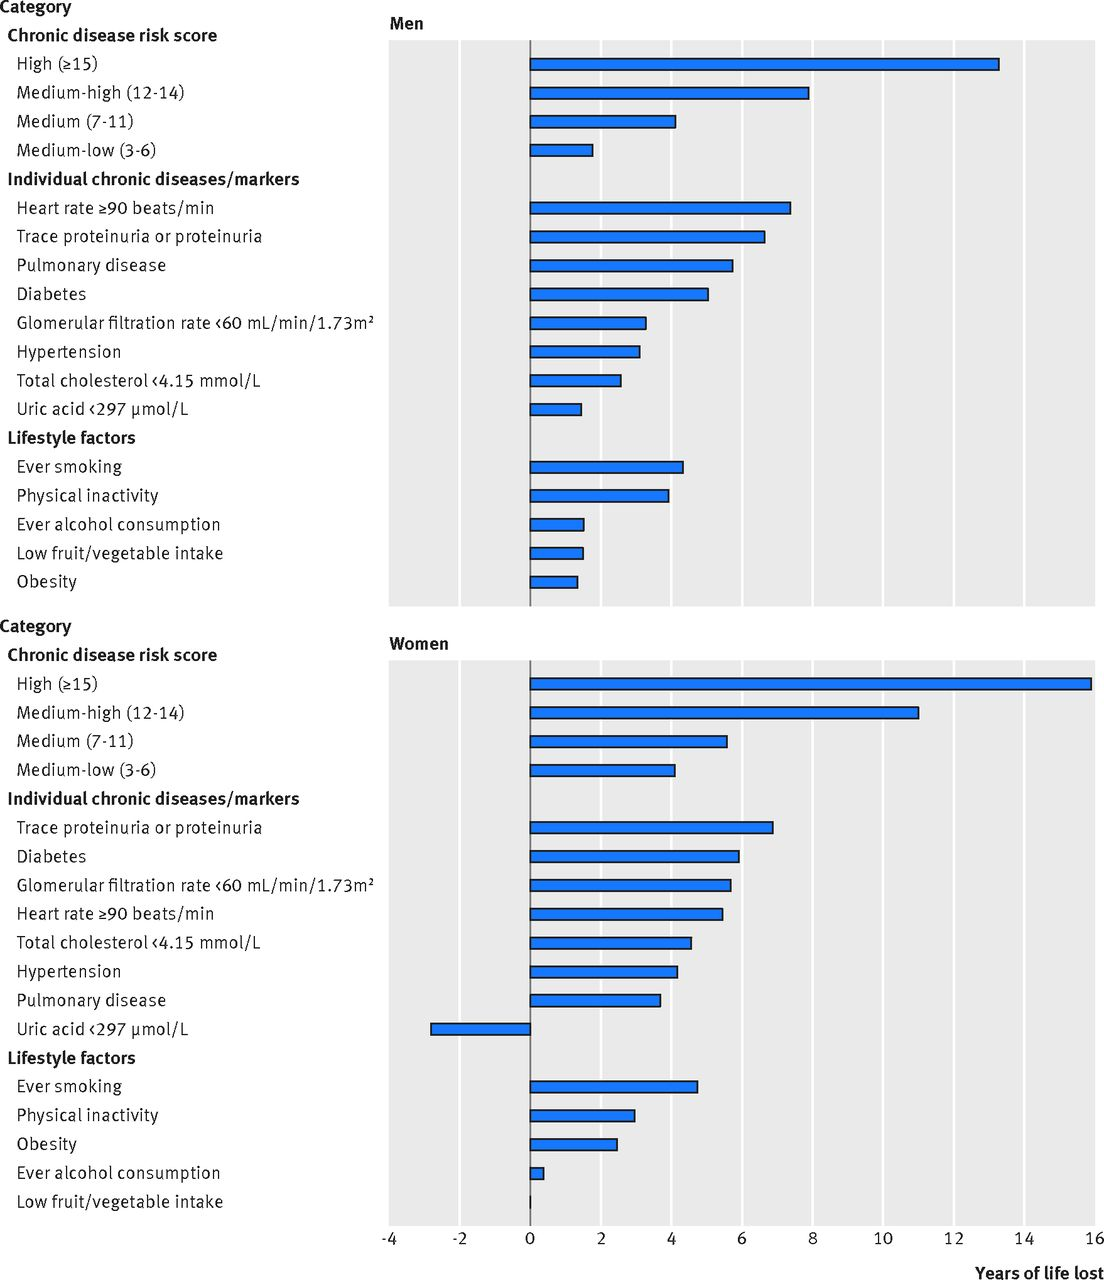 Cancer risk associated with chronic diseases and disease